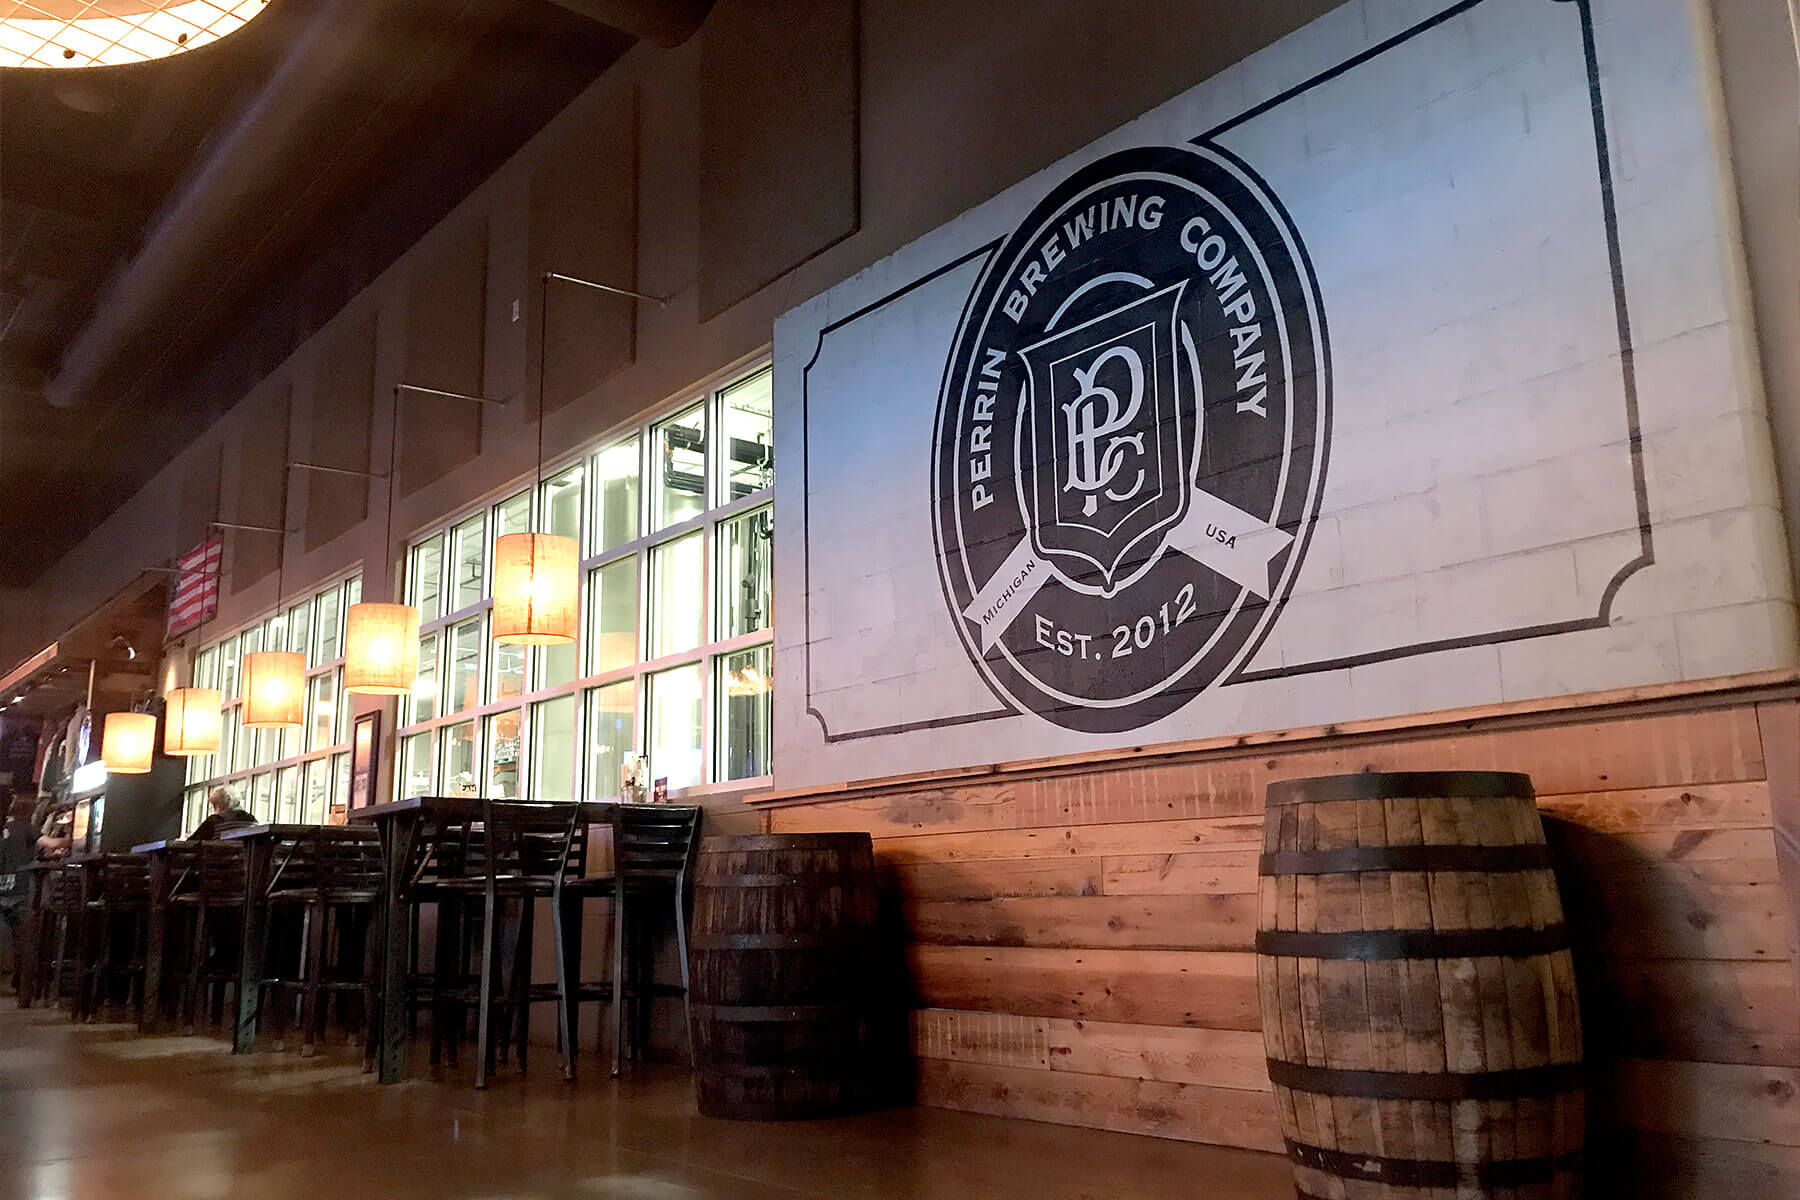 Inside the Tap Room at Perrin Brewing Company in Grand Rapids, Michigan